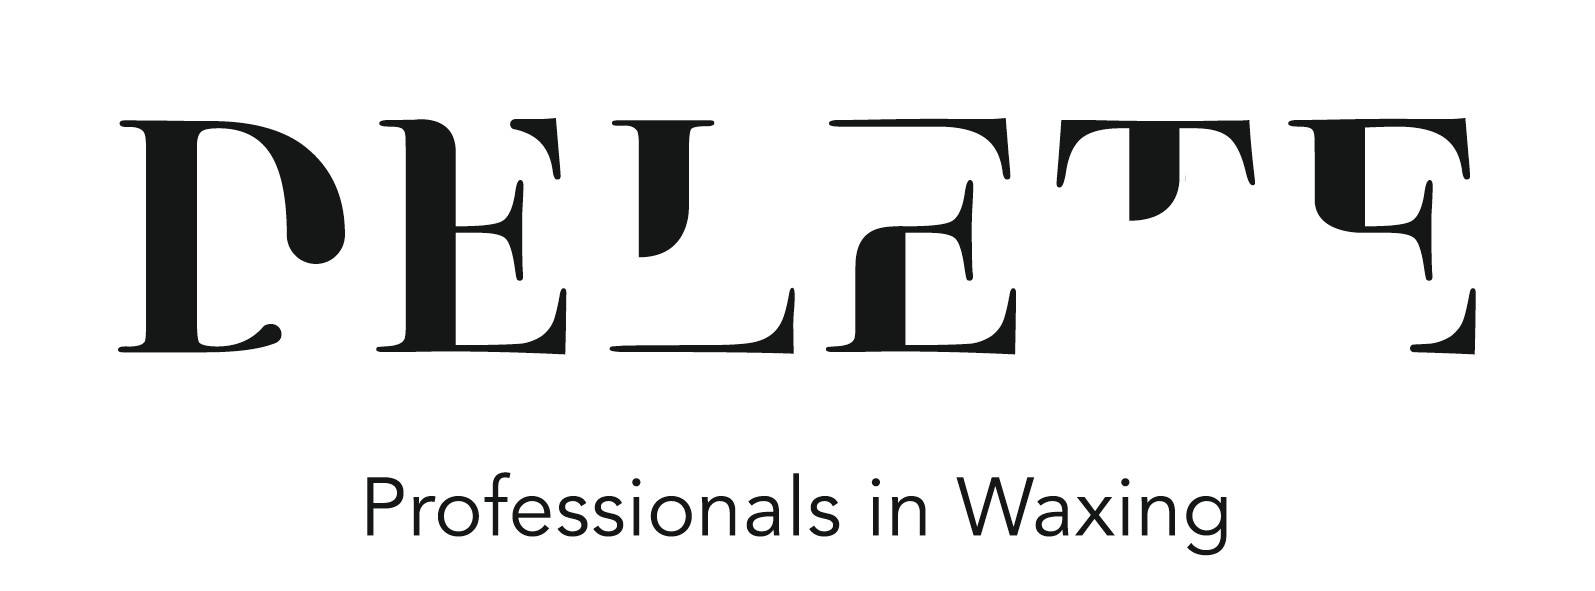 Delete Professionals in Waxing